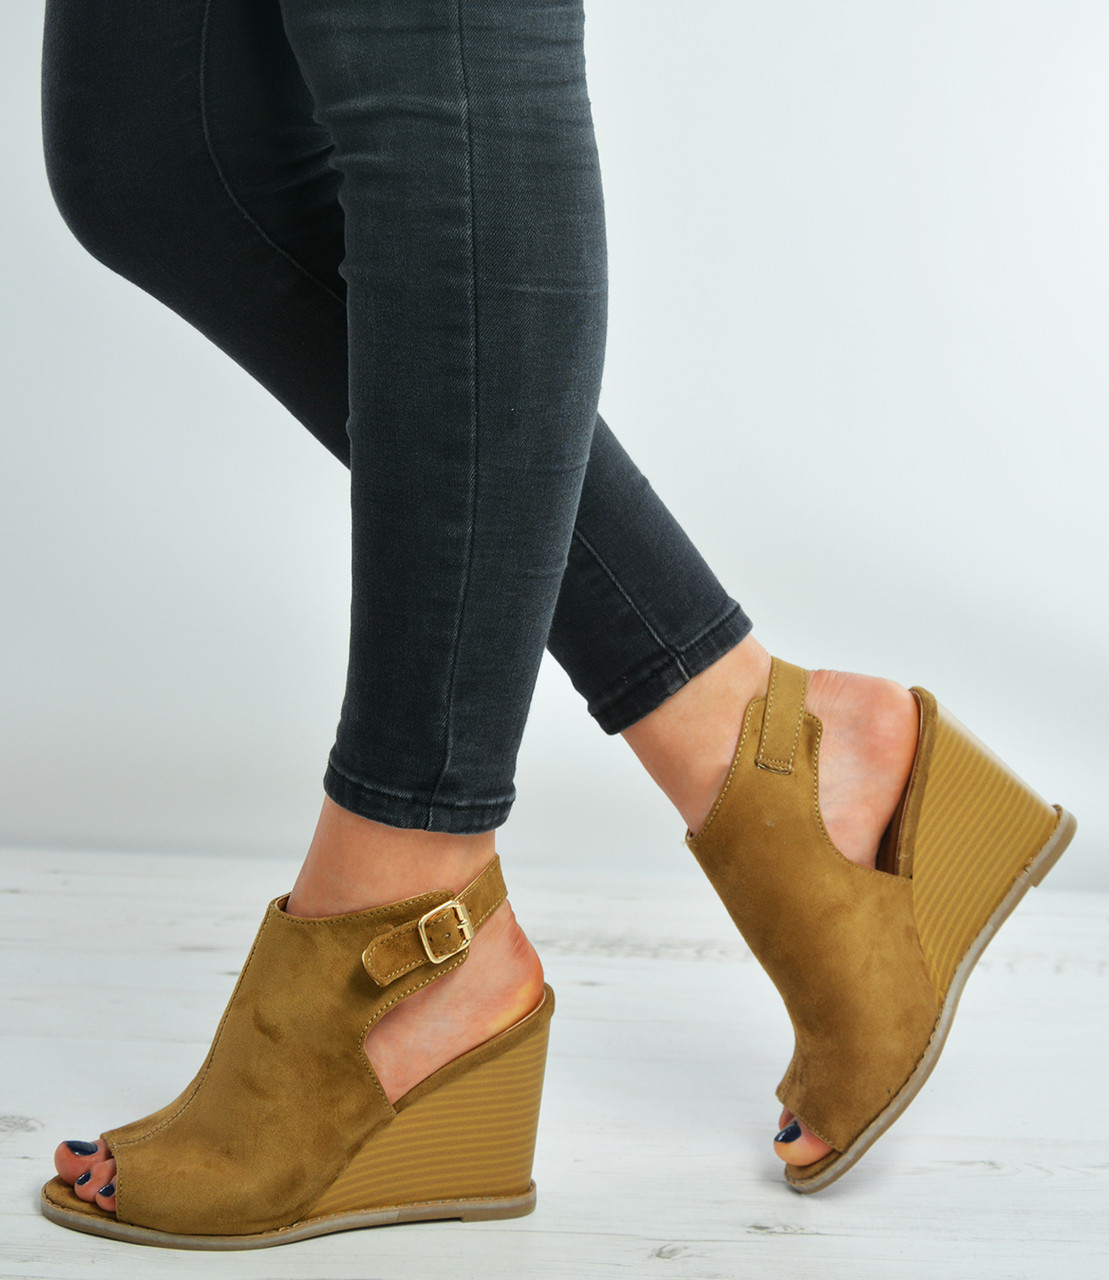 Strap Camel Suede 3 Ankle Size Shoes Wedge Sandals Uk 8 0wO8PNnyvm